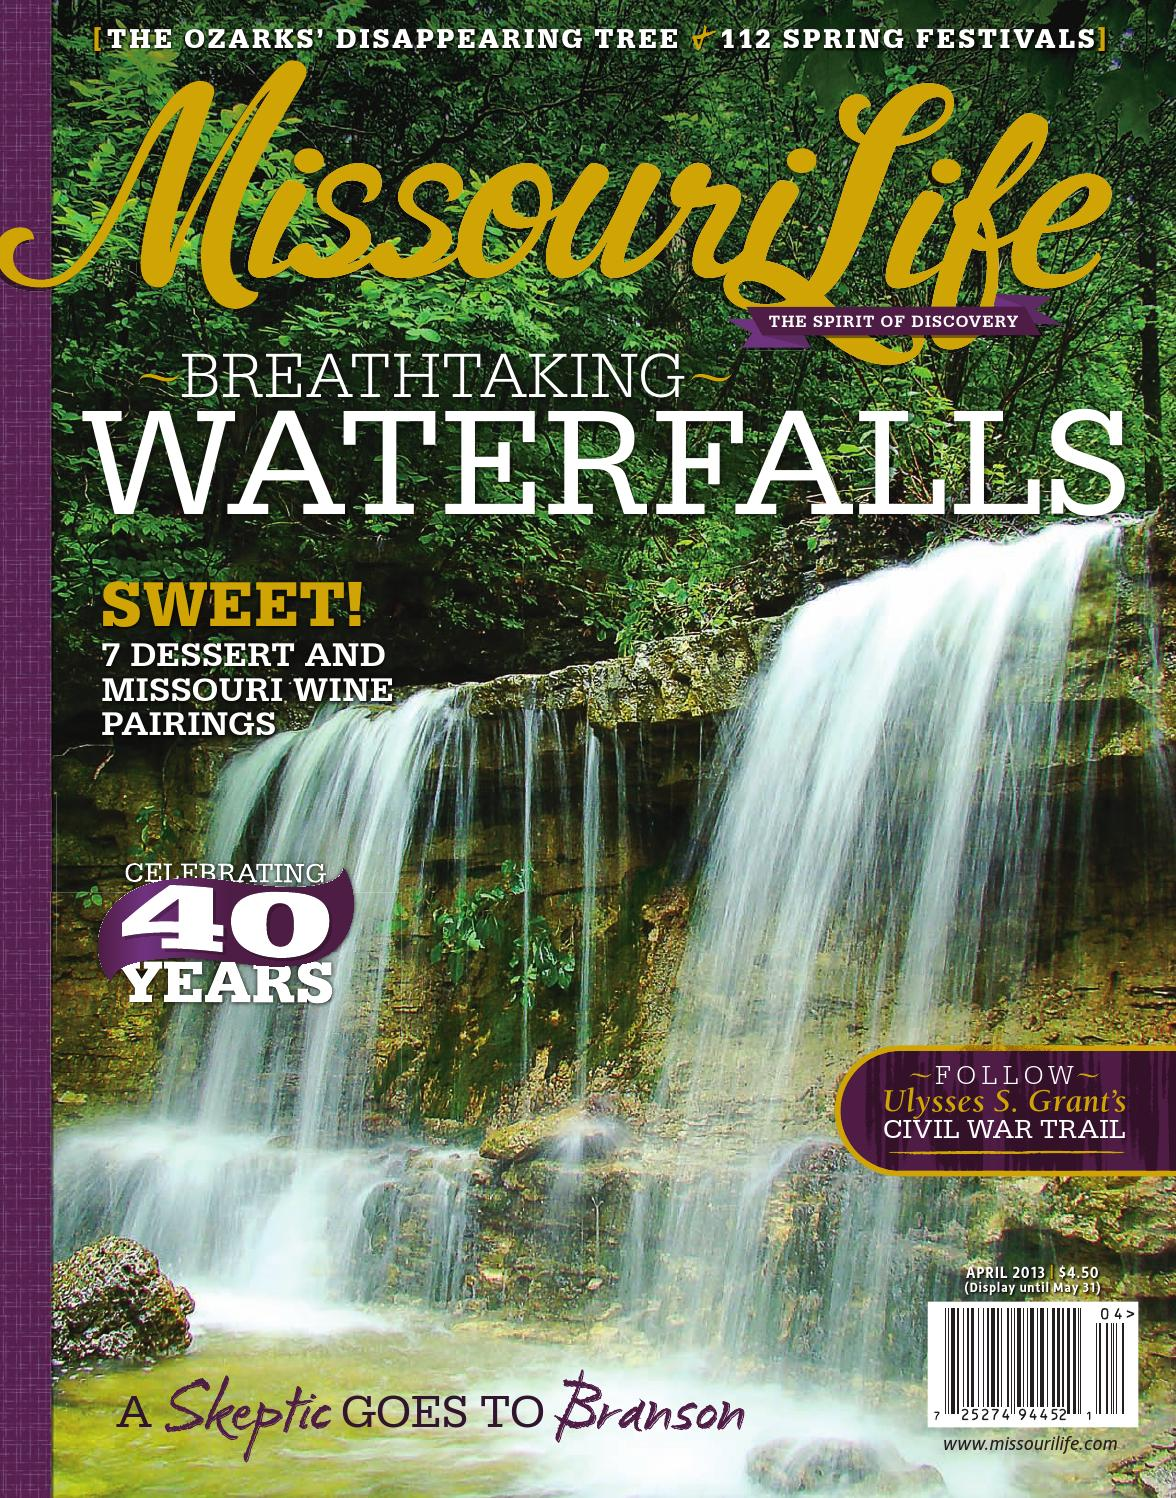 Missouri life aprilmay 2013 by missouri life magazine issuu fandeluxe Image collections